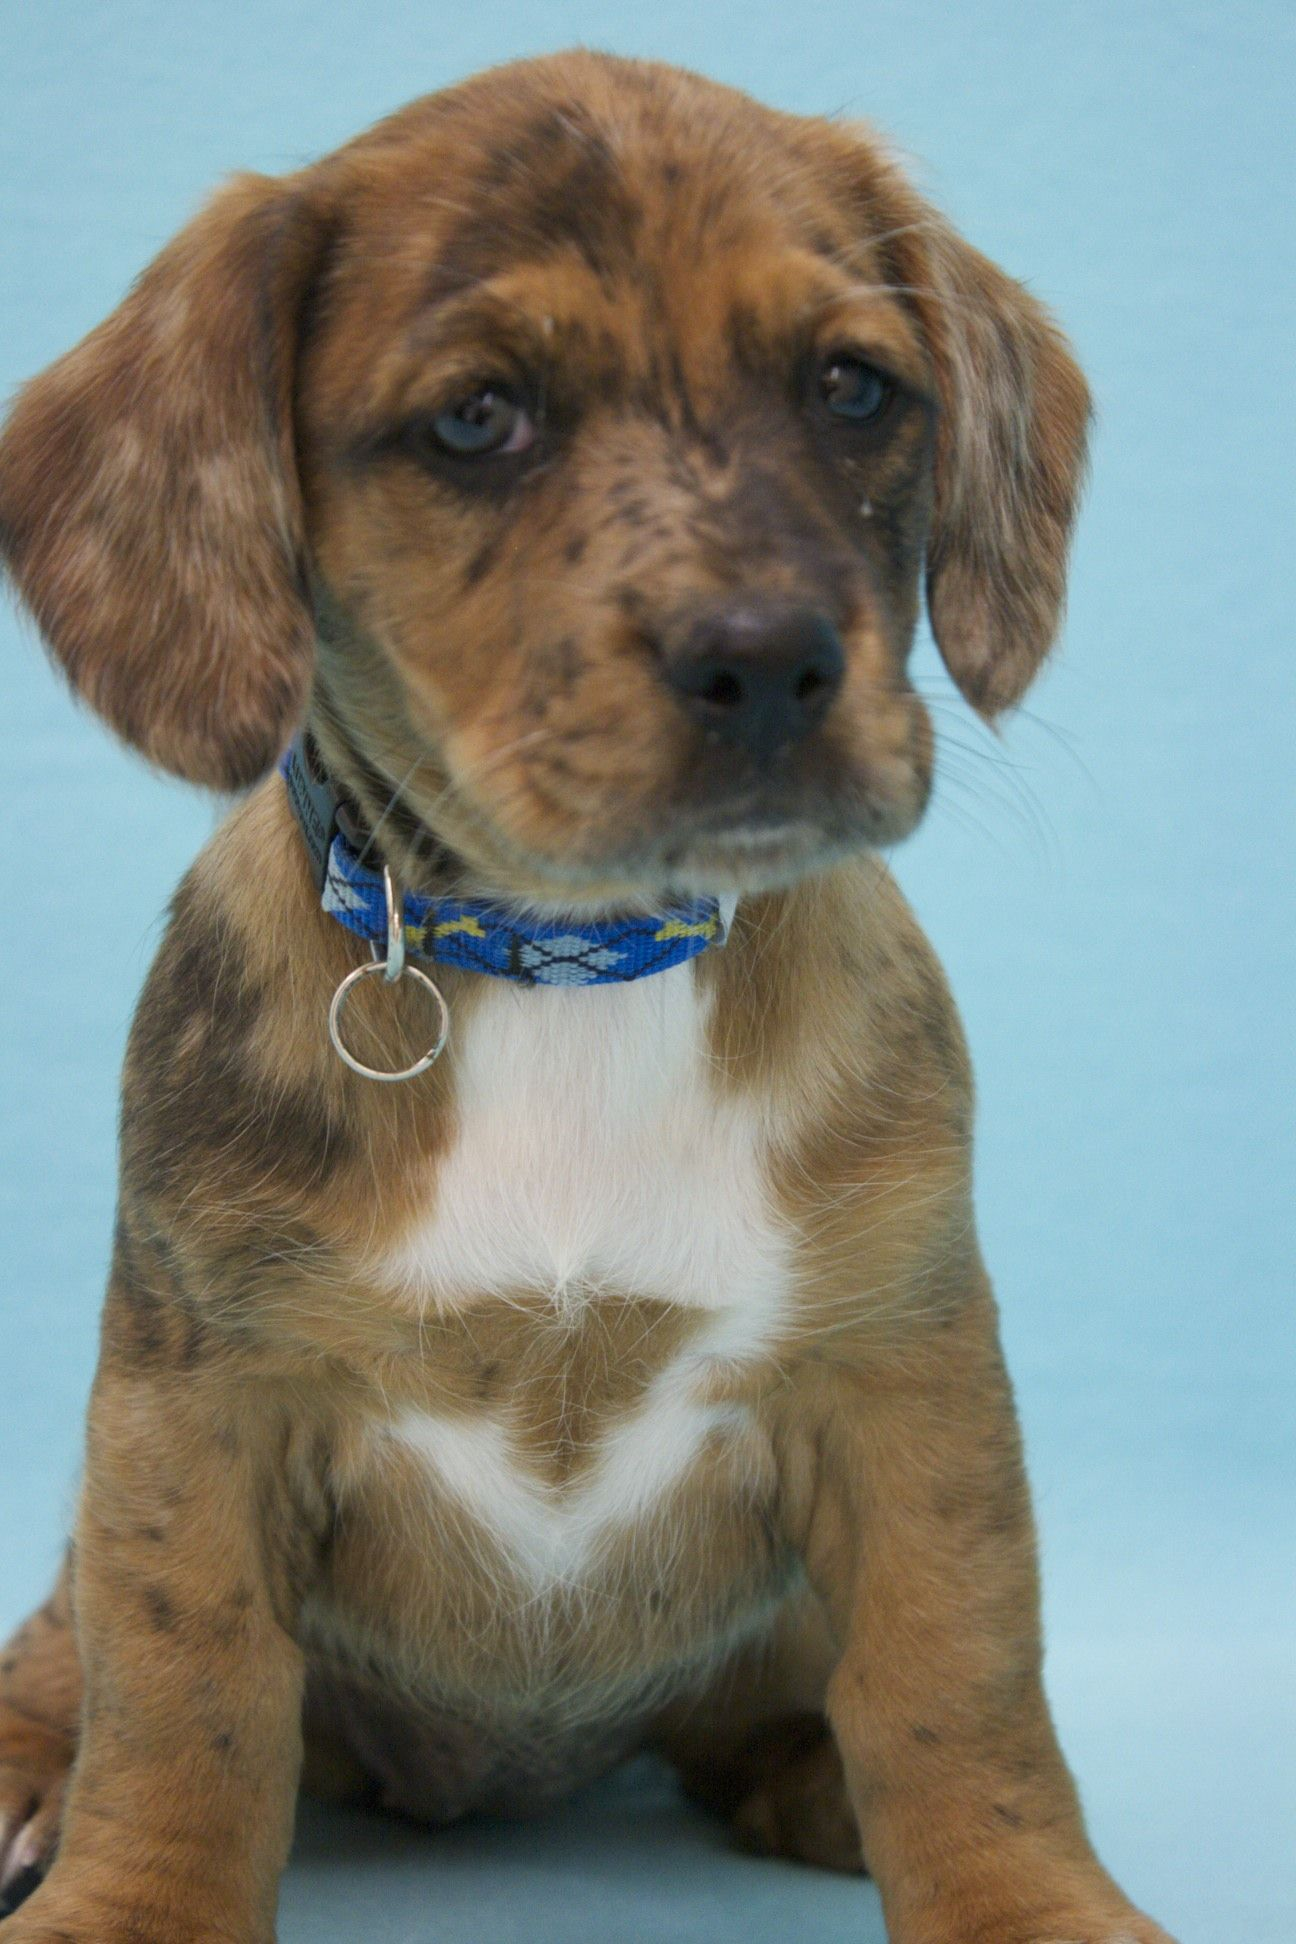 Cream Pie, an adoptable mutt in Broomfield, CO! www.muttsavers.org